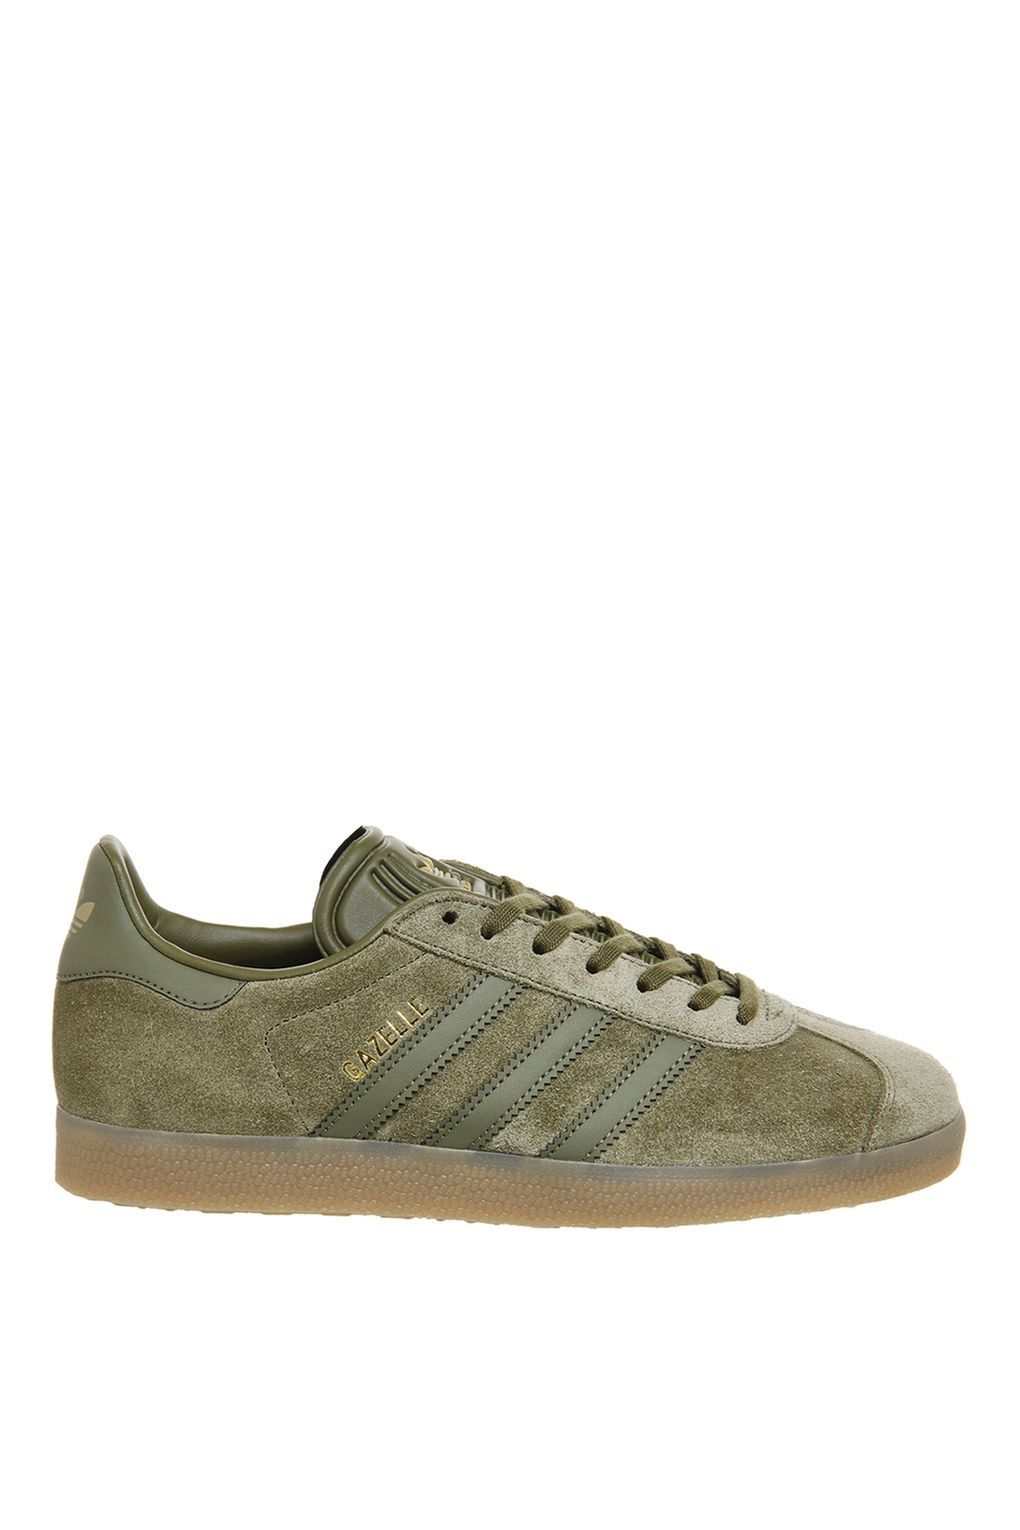 1208f050ce0 Gazelle Trainers by adidas supplied by Office - Trainers - Shoes ...